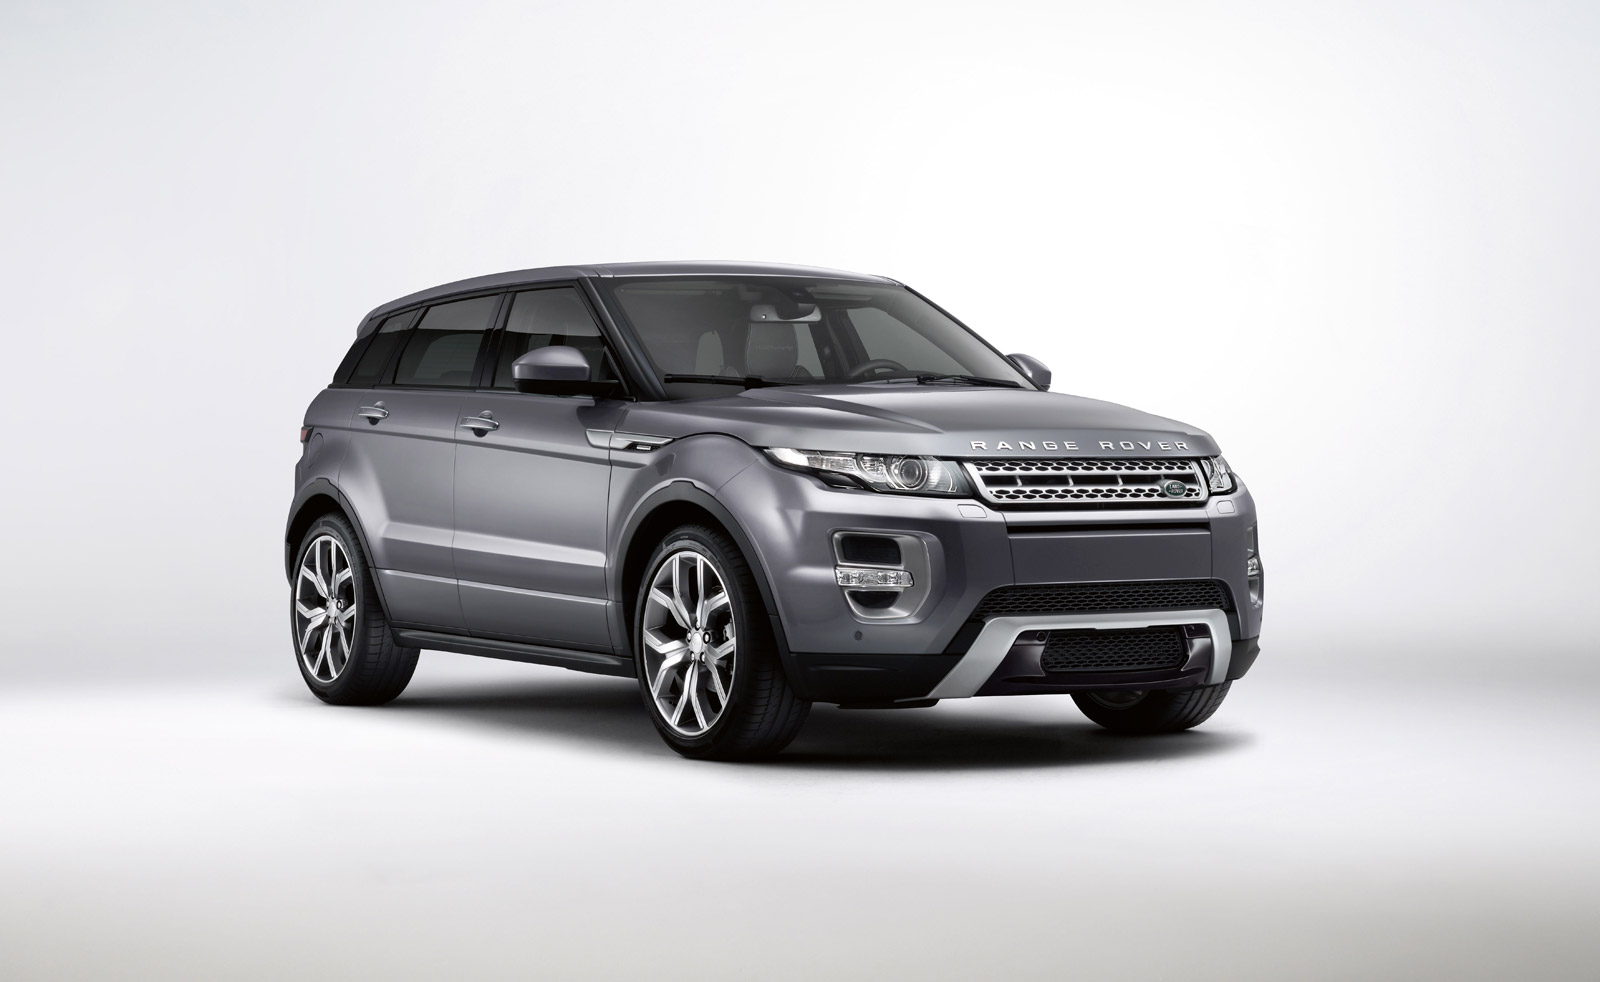 2015 land rover range rover evoque review ratings specs prices and photos the car connection. Black Bedroom Furniture Sets. Home Design Ideas